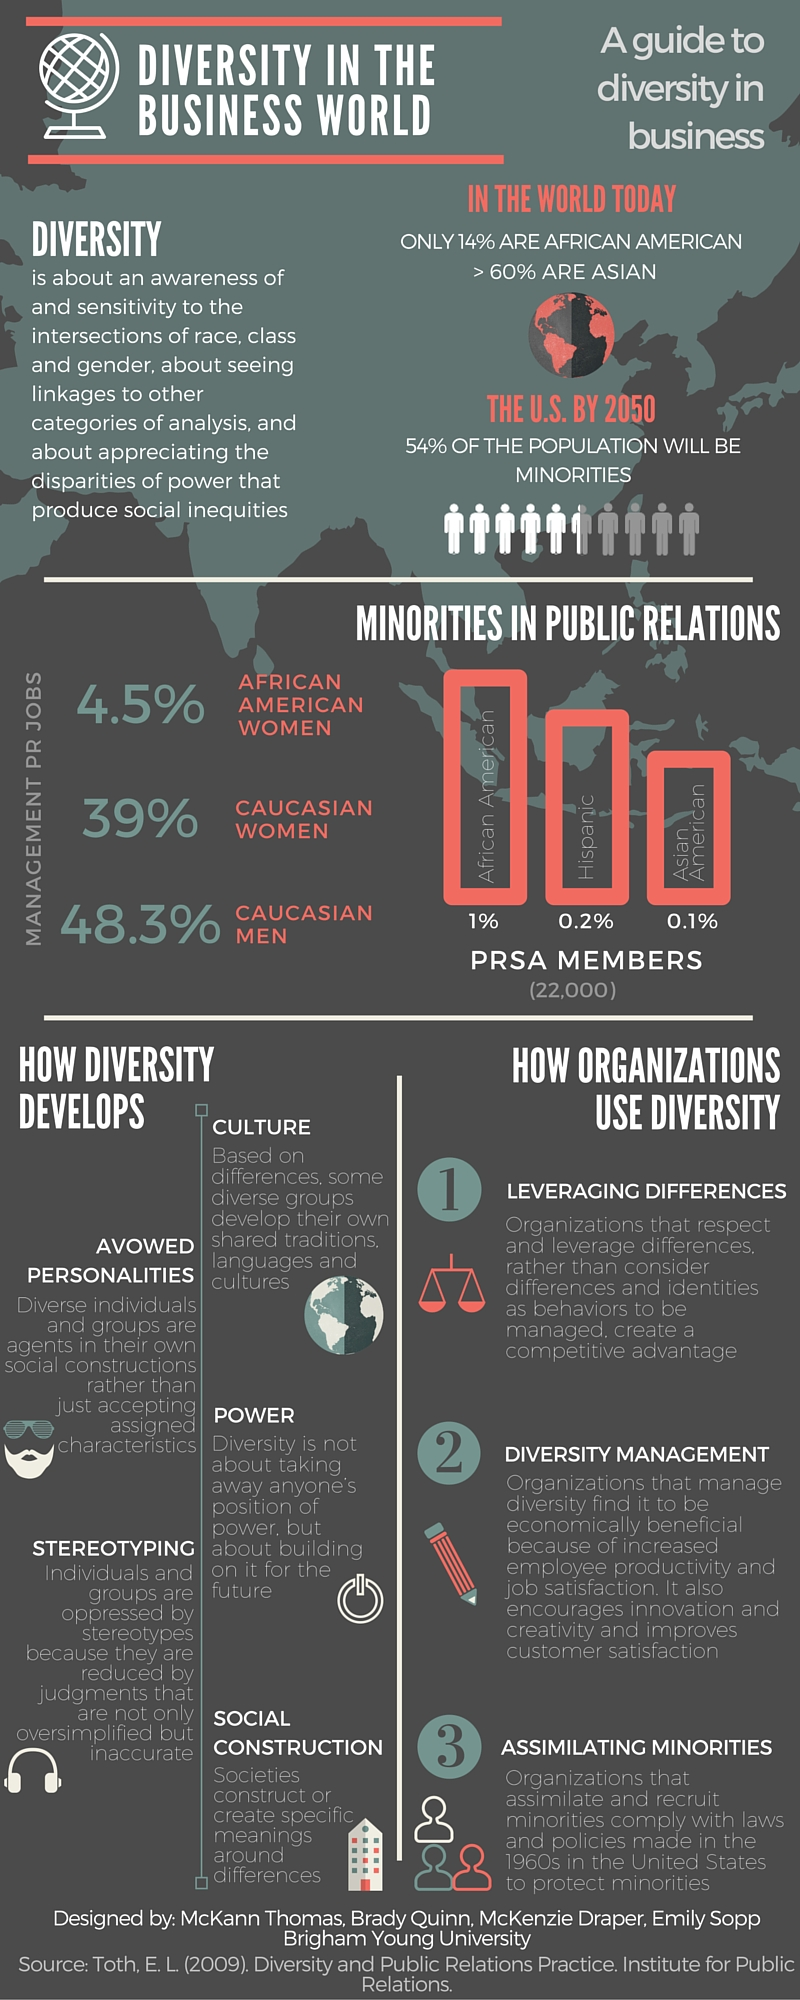 diversity and public relations practice institute for public the business case for diversity building relationships diverse publics locally and globally